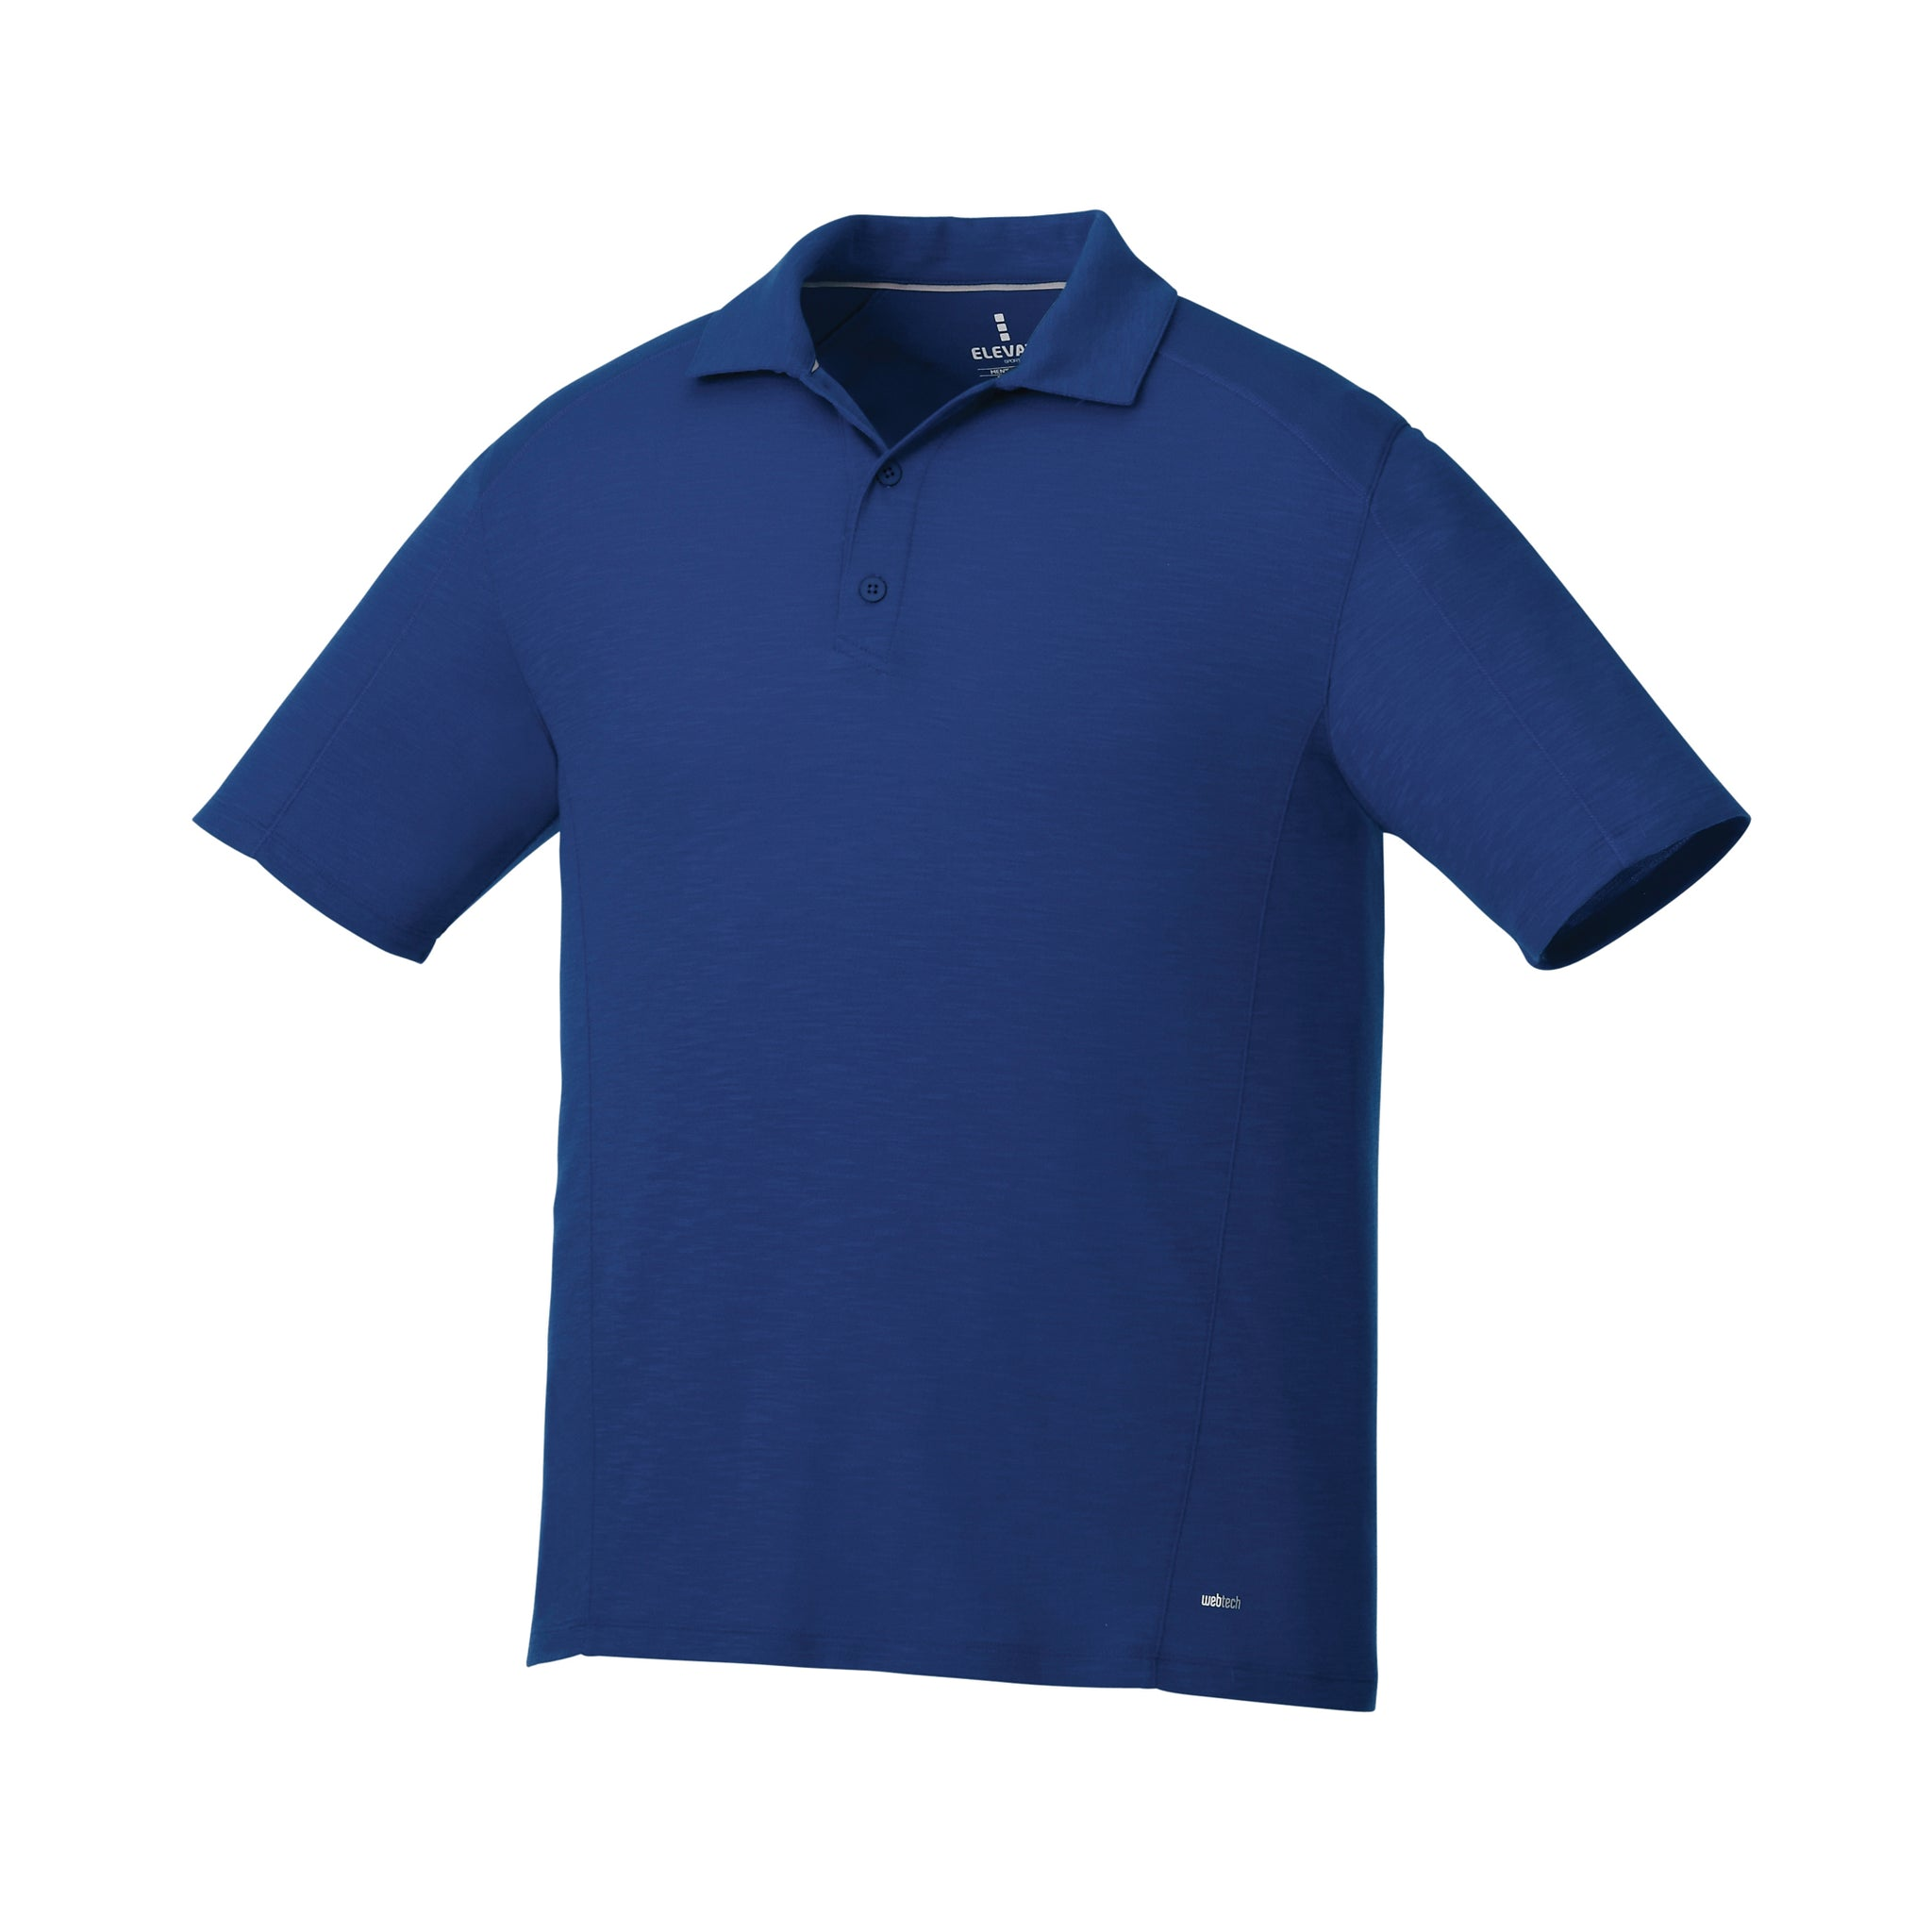 TRIMARK MEN'S JEPSON POLO